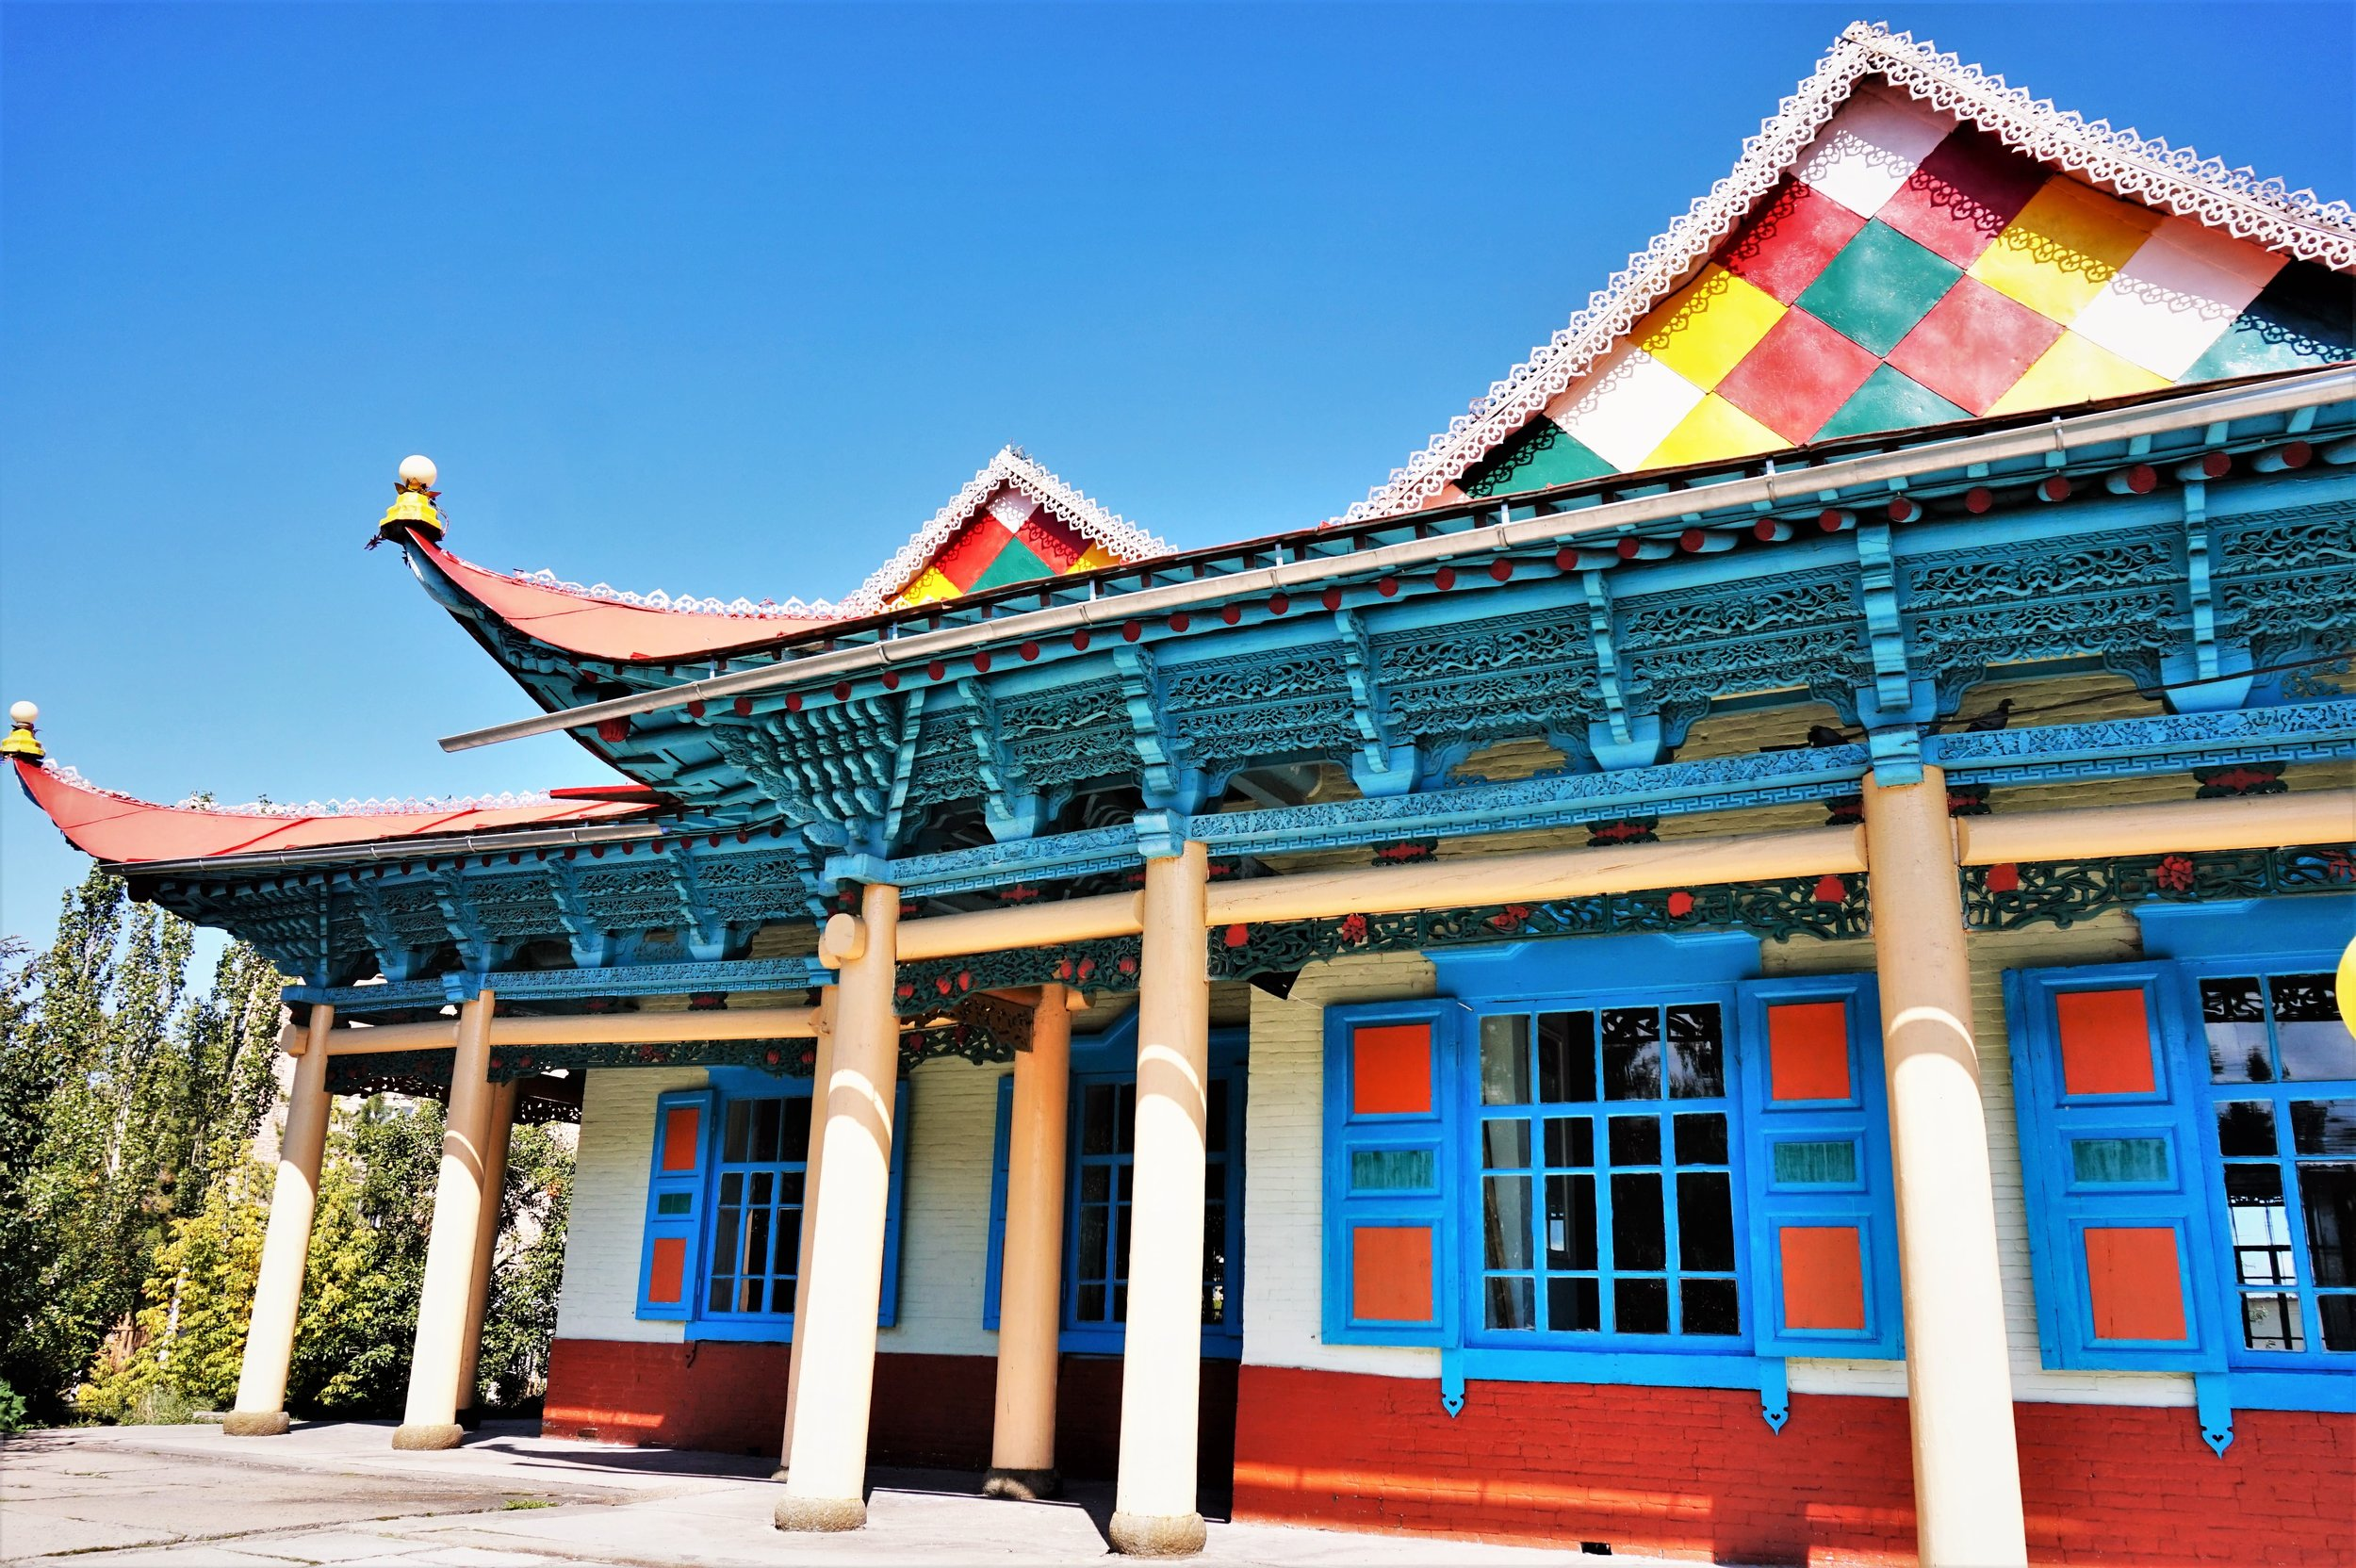 The Dungan temple in Karakol is one of the best things to see in Kyrgyzstan. Awesome things to do in Kyrgyzstan!